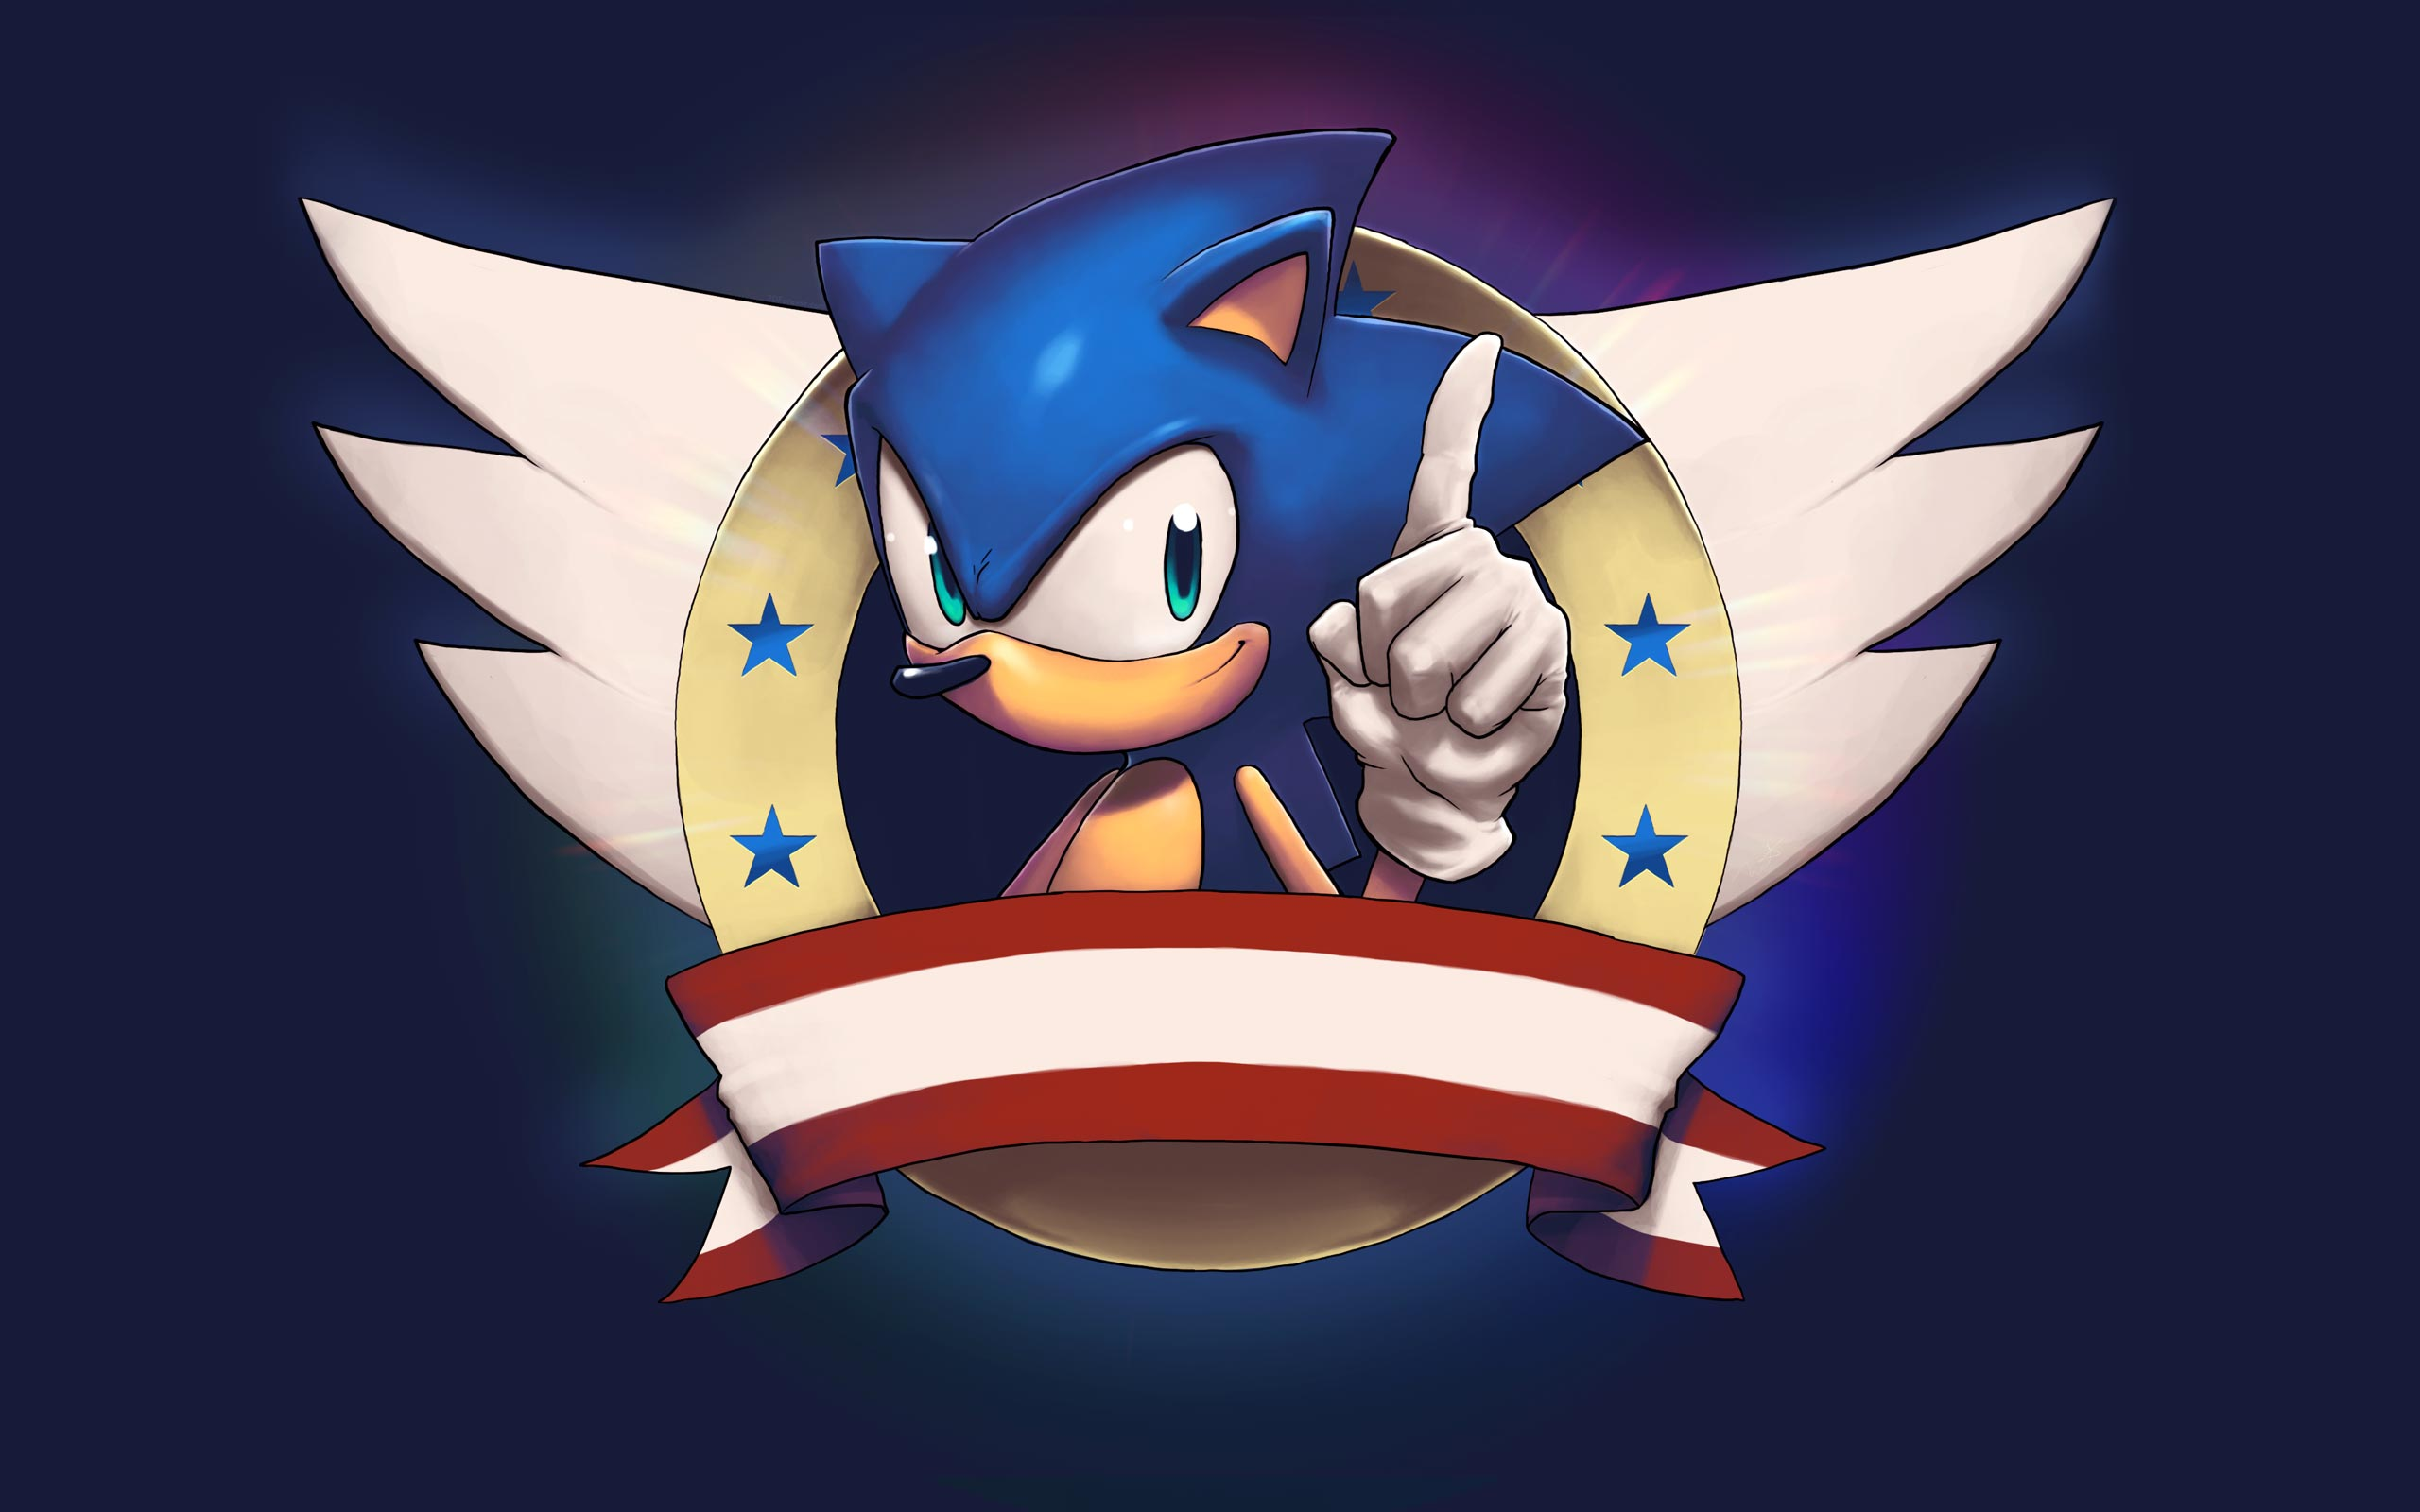 49 Classic Sonic Wallpaper Hd On Wallpapersafari